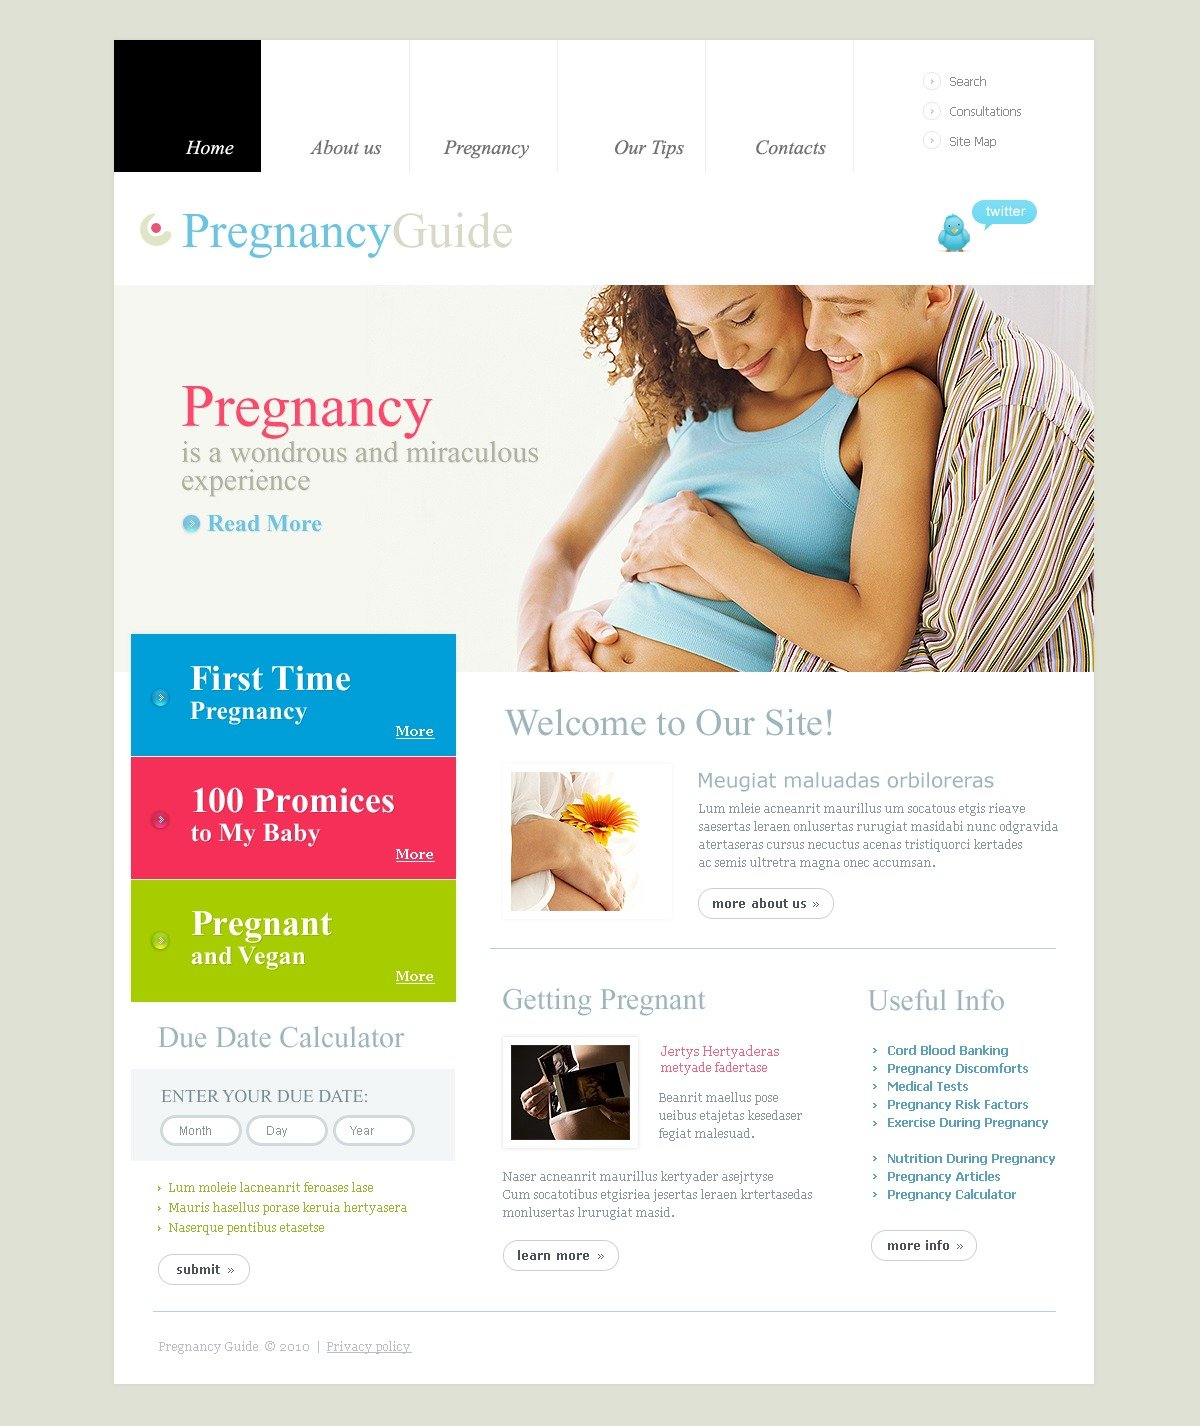 The Pregnancy Guide PSD Design 54134, one of the best PSD templates of its kind (medical, most popular, wide, jquery), also known as pregnancy guide PSD template, webpage PSD template, site PSD template, information PSD template, events PSD template, archive PSD template, links PSD template, individual PSD template, guestbook PSD template, journal PSD template, visitors PSD template, opinion PSD template, discussion blogroll PSD template, topics PSD template, visitors PSD template, maternity PSD template, style PSD template, exercises PSD template, baby center PSD template, fertility PSD template, clothes PSD template, food PSD template, calendar PSD template, toys PSD template, safety PSD template, childbirth PSD template, Cesarean section and related with pregnancy guide, webpage, site, information, events, archive, links, individual, guestbook, journal, visitors, opinion, discussion blogroll, topics, visitors, maternity, style, exercises, baby center, fertility, clothes, food, calendar, toys, safety, childbirth, Cesarean section, etc.